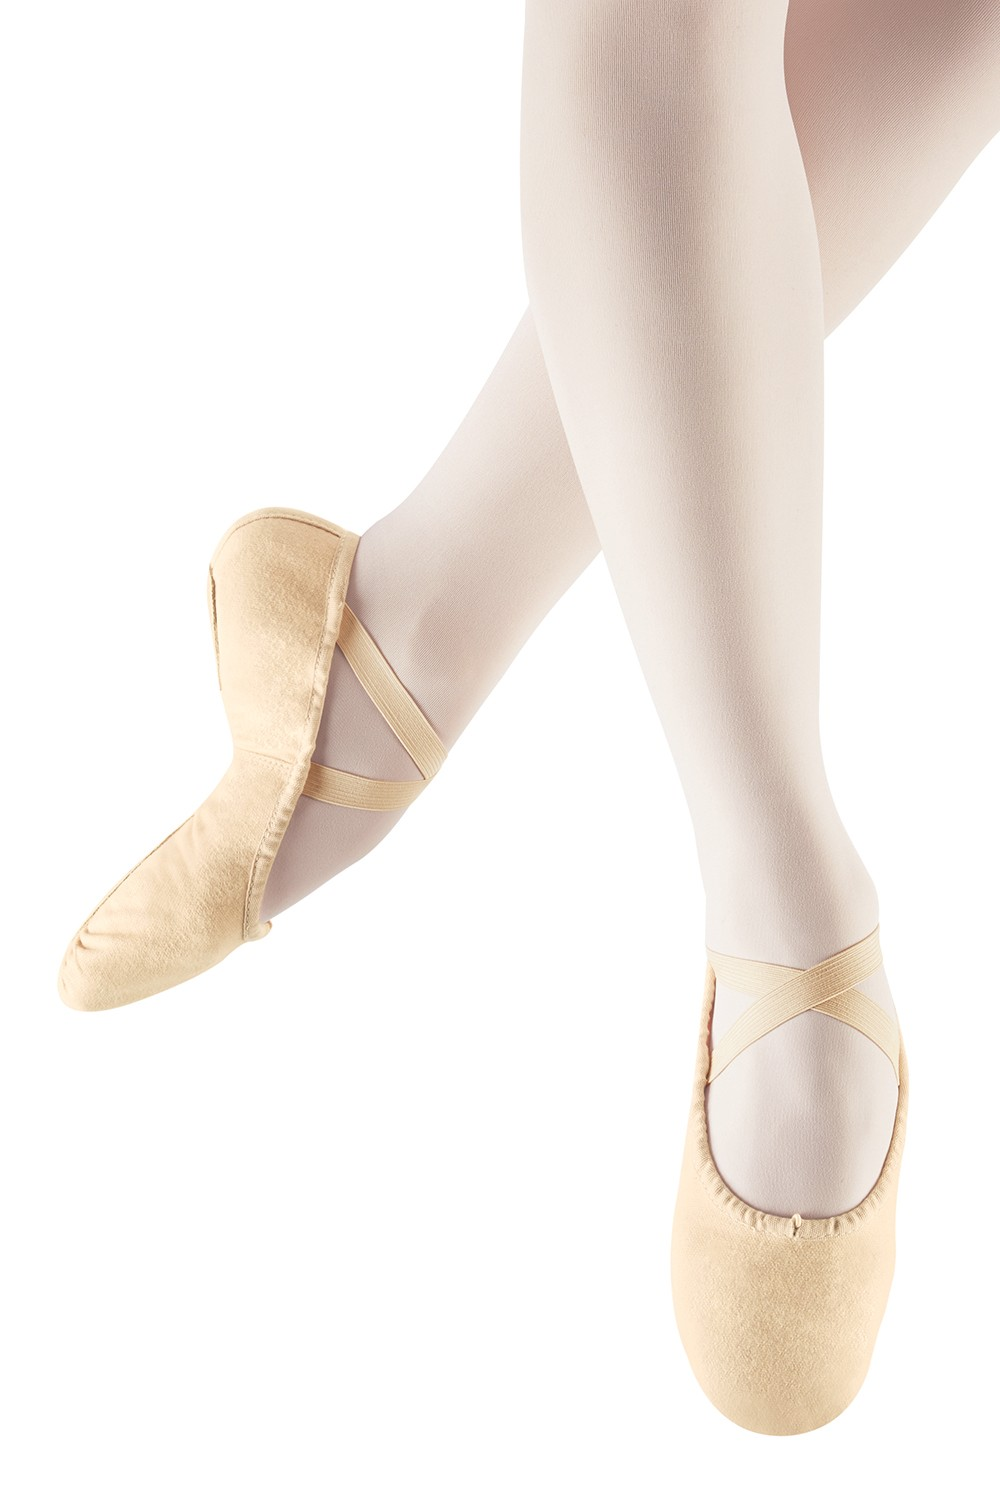 Company Women's Ballet Shoes